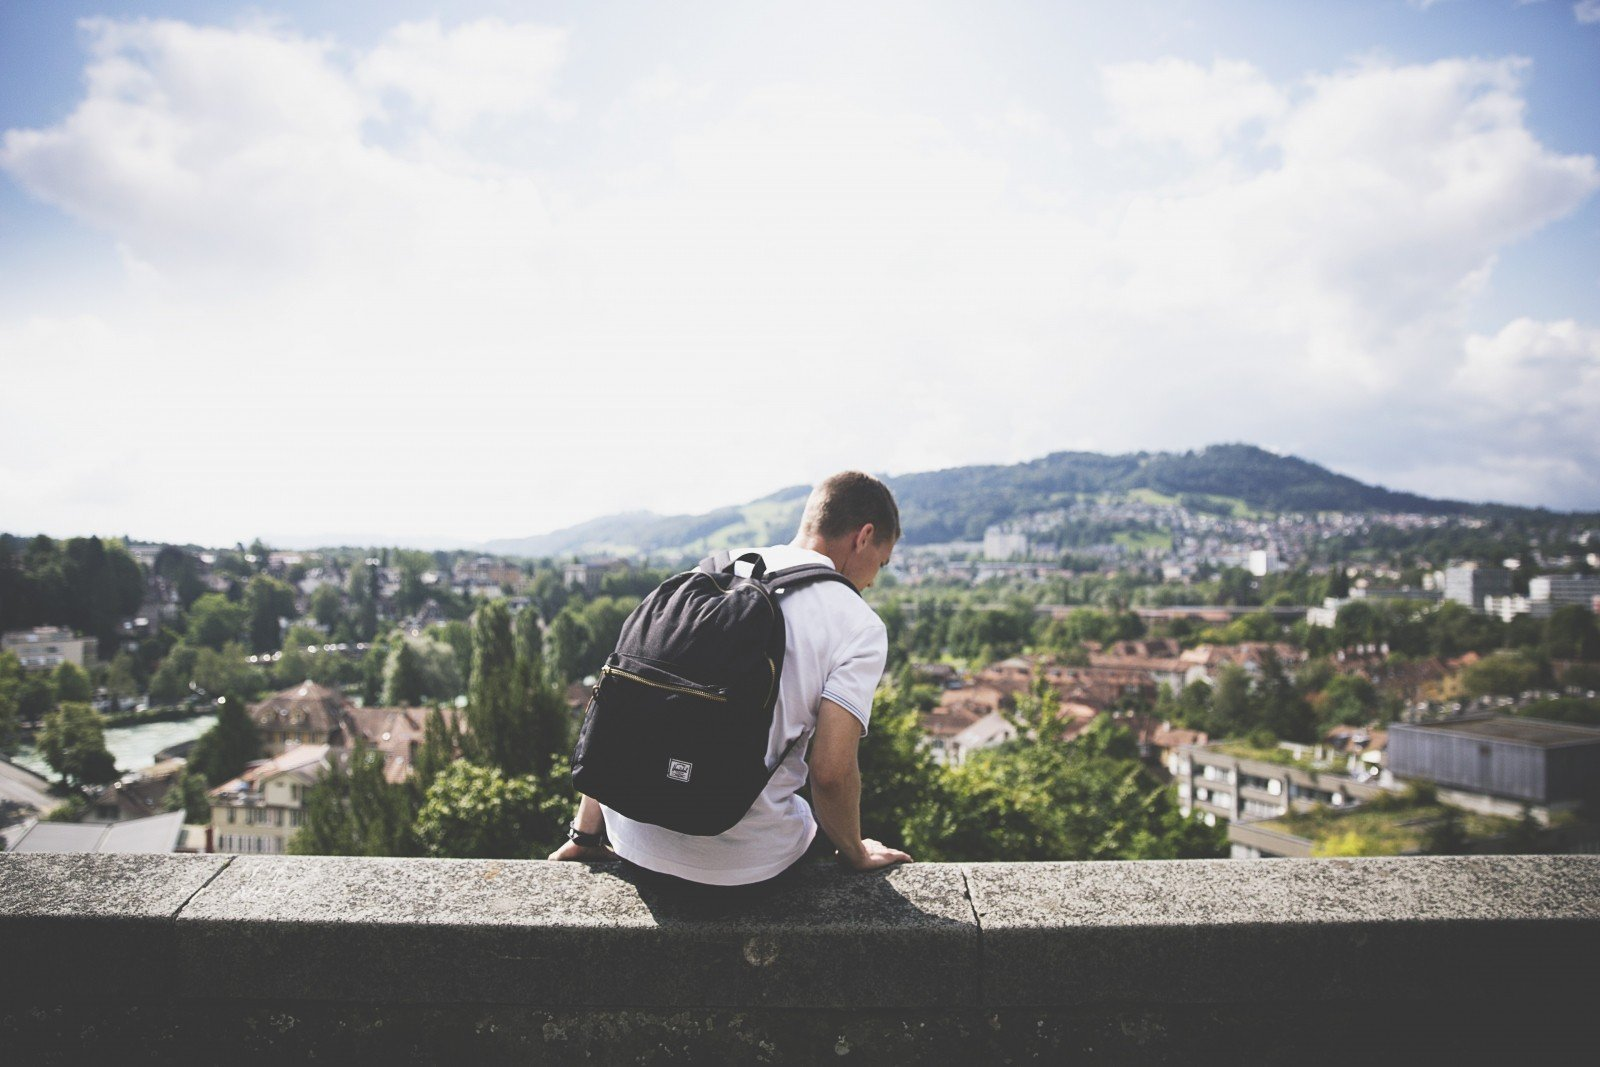 backpacker-sitting-on-wall-and-looking-down-on-town